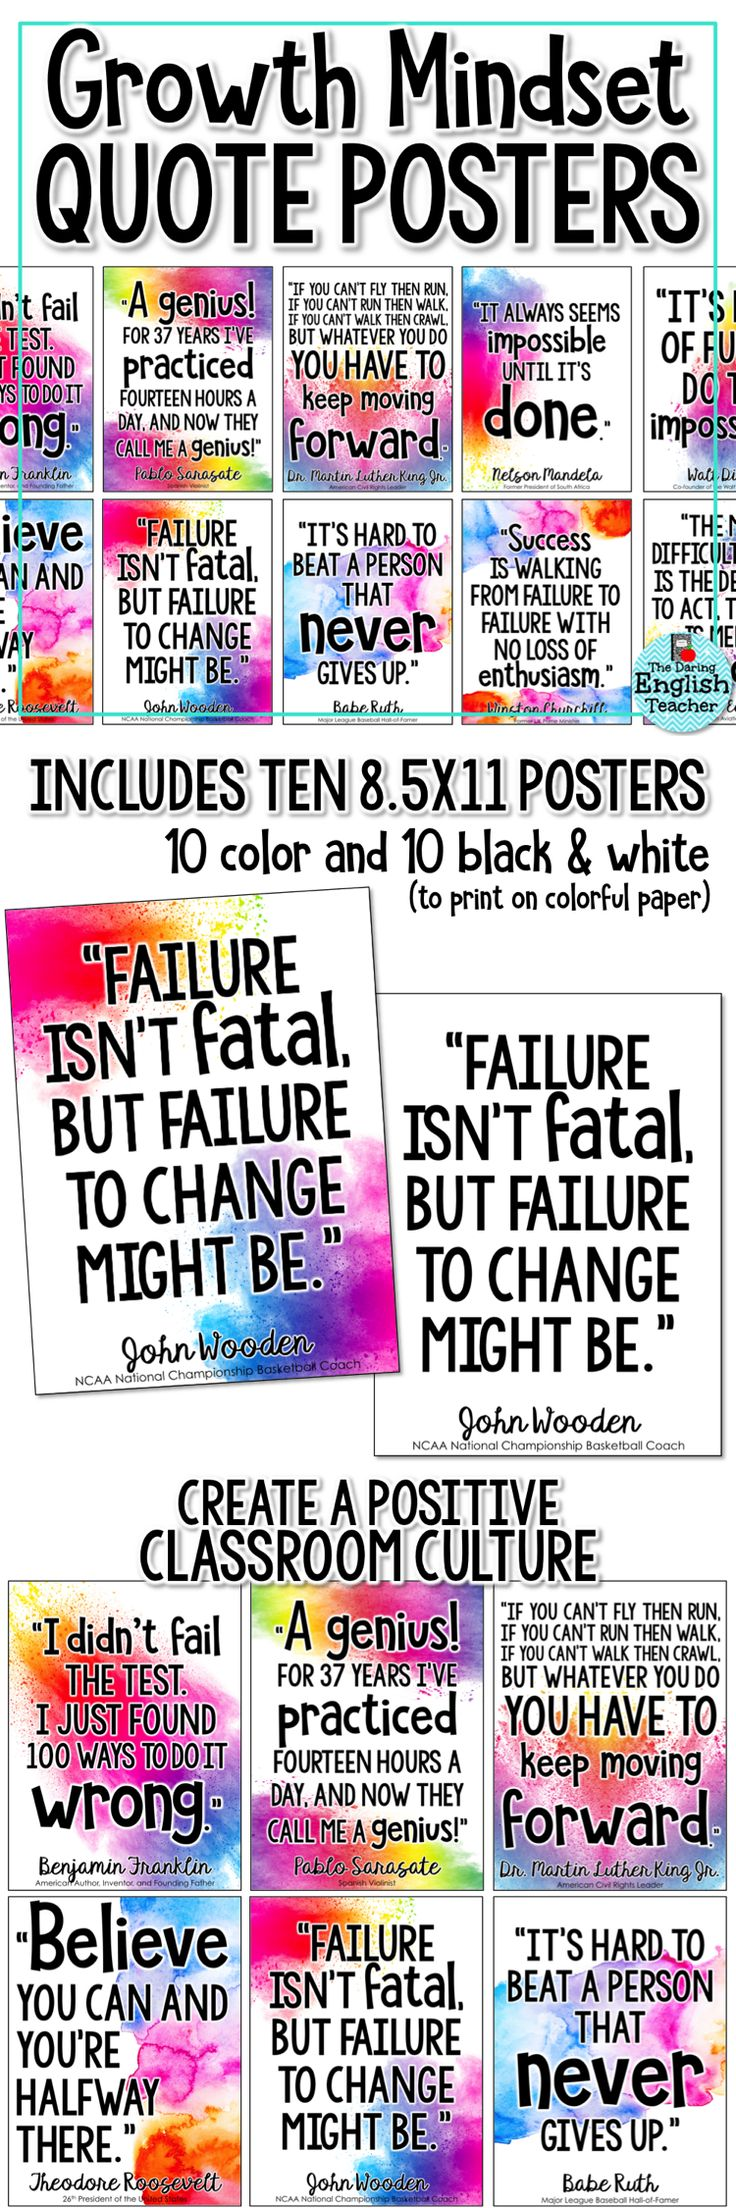 Cultivate a growth mindset in your classroom with these colorful growth mindset quote posters. Ideal for a growth mindset bulletin board or class display, these posters will help students work on improving their own mindset.